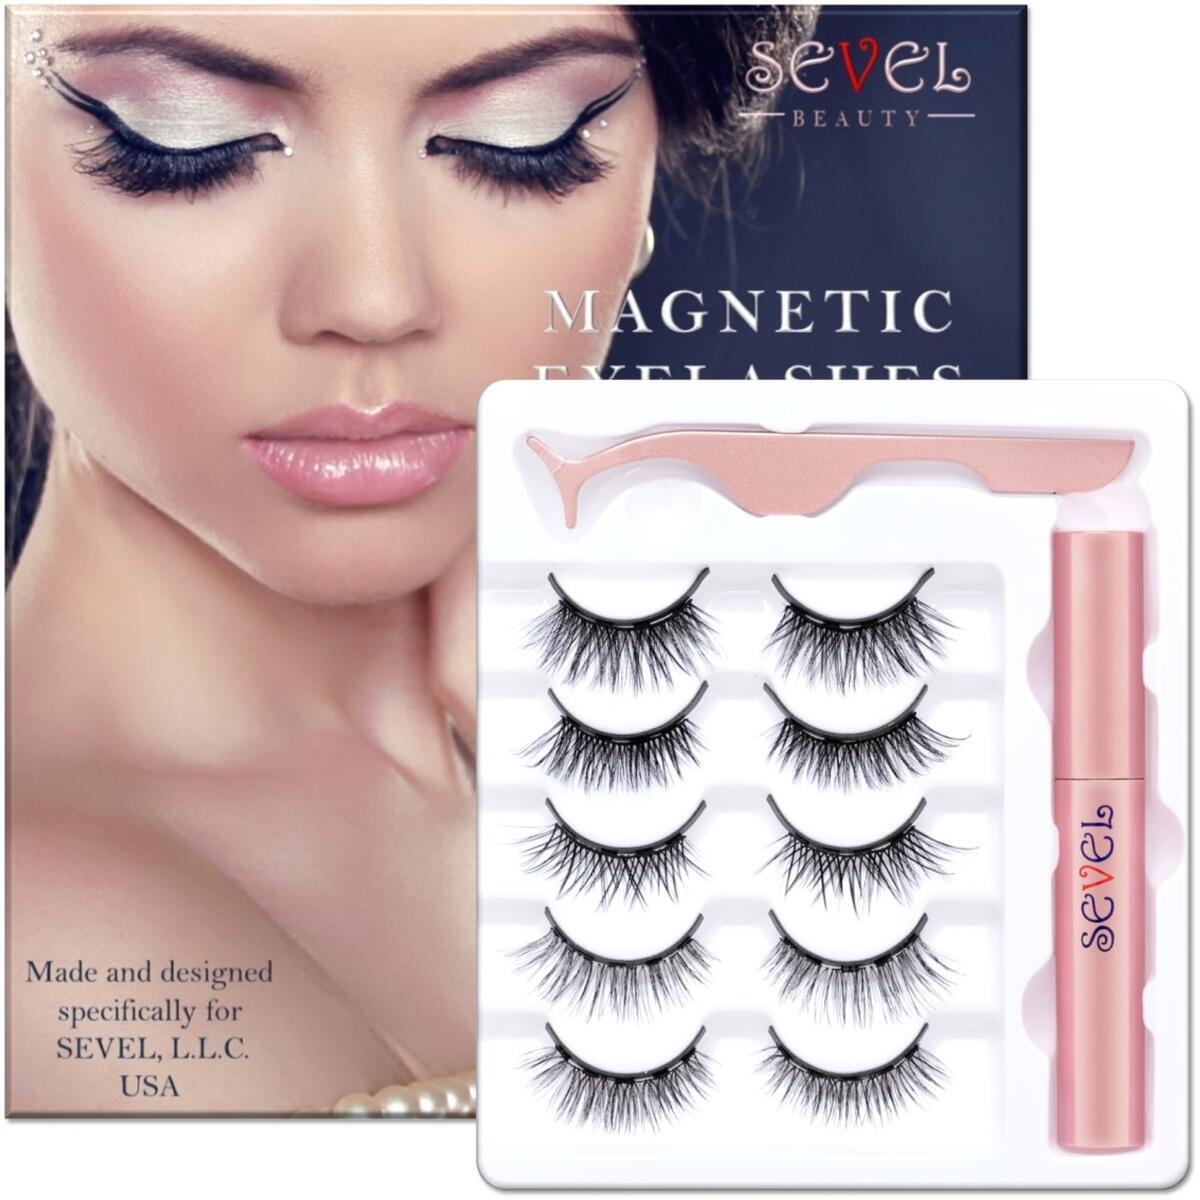 Magnetic Eyelashes with Eyeliner, Natural Look Magnetic Lashes, 5 Pairs Eyelashes Pack by SEVEL